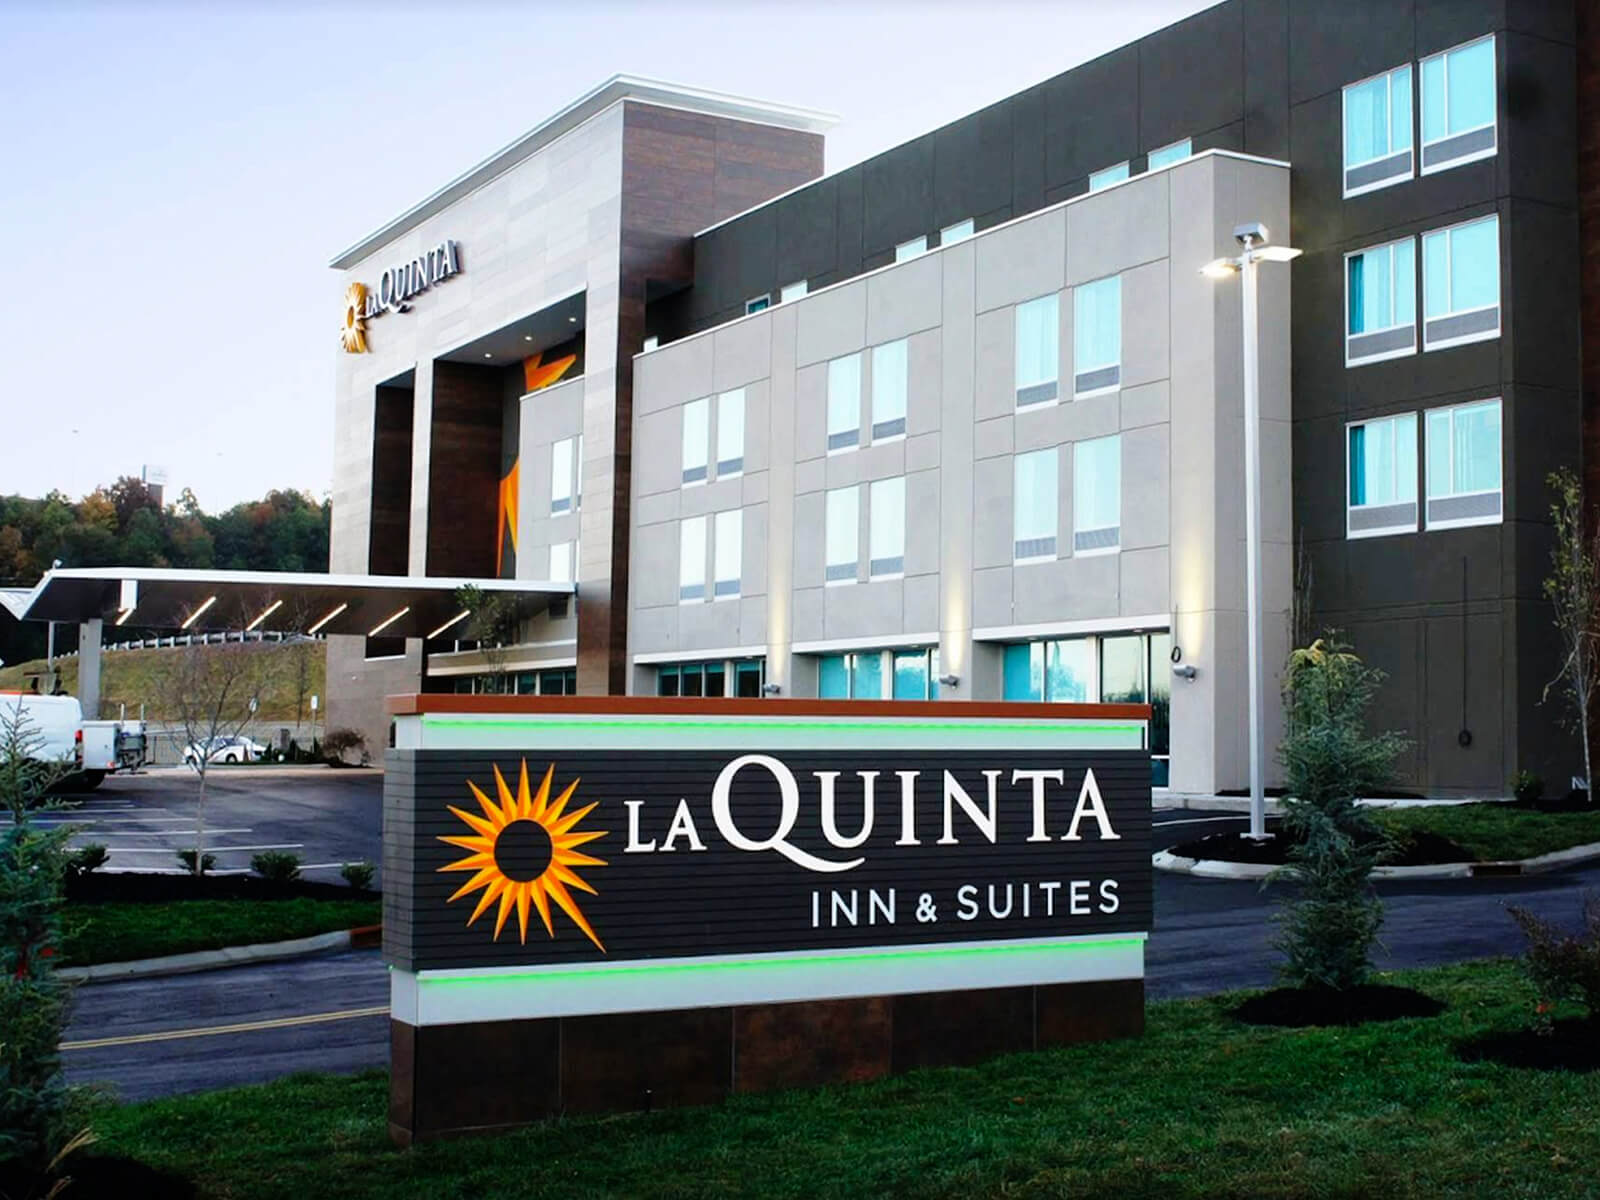 Our award winning hotel signage installation for LaQuinta Inn & Suites